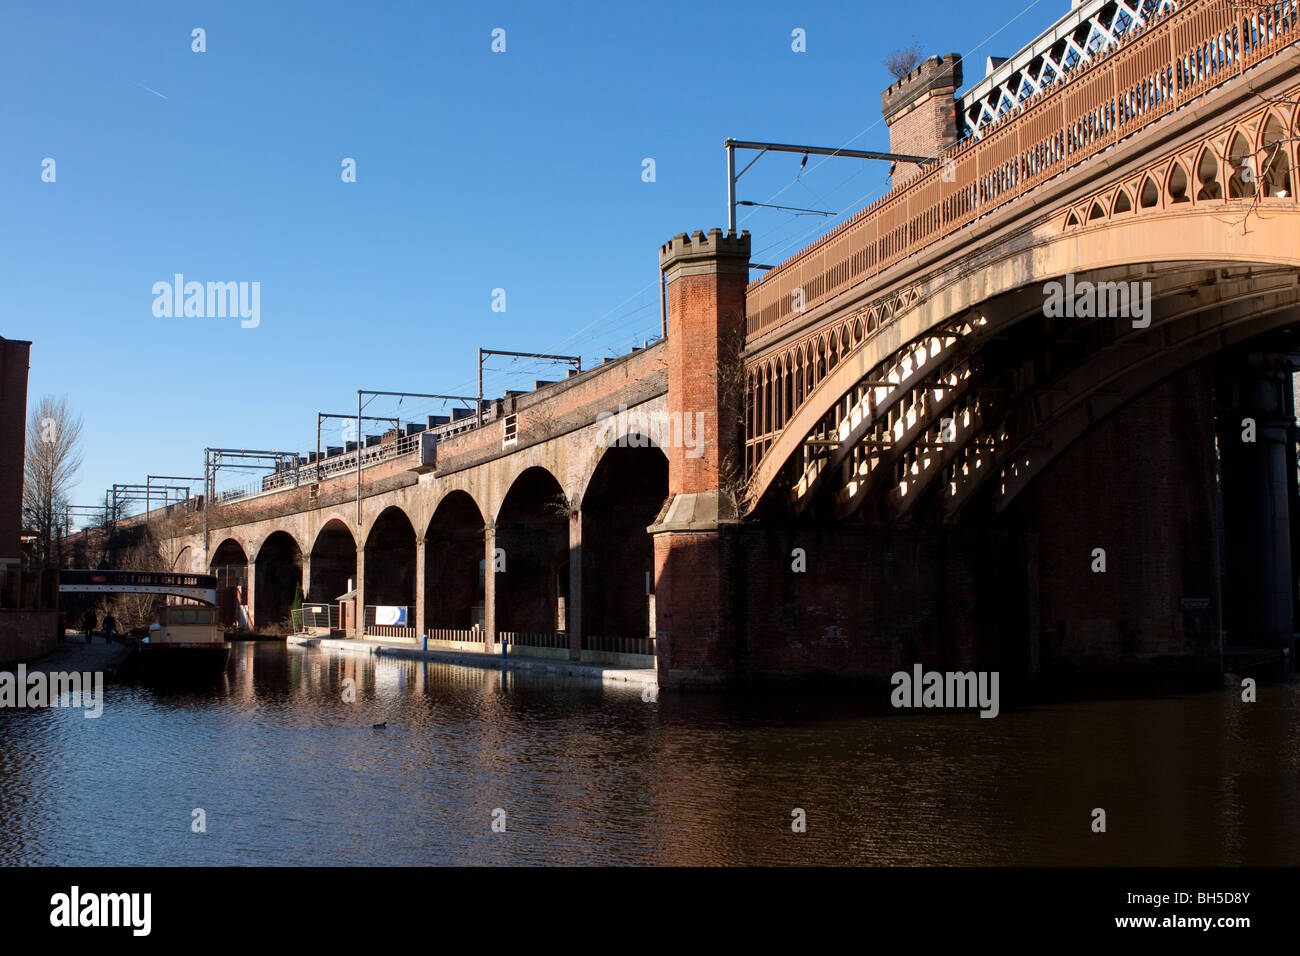 Manchester canal and railway bridge arches in castlefield - Stock Image